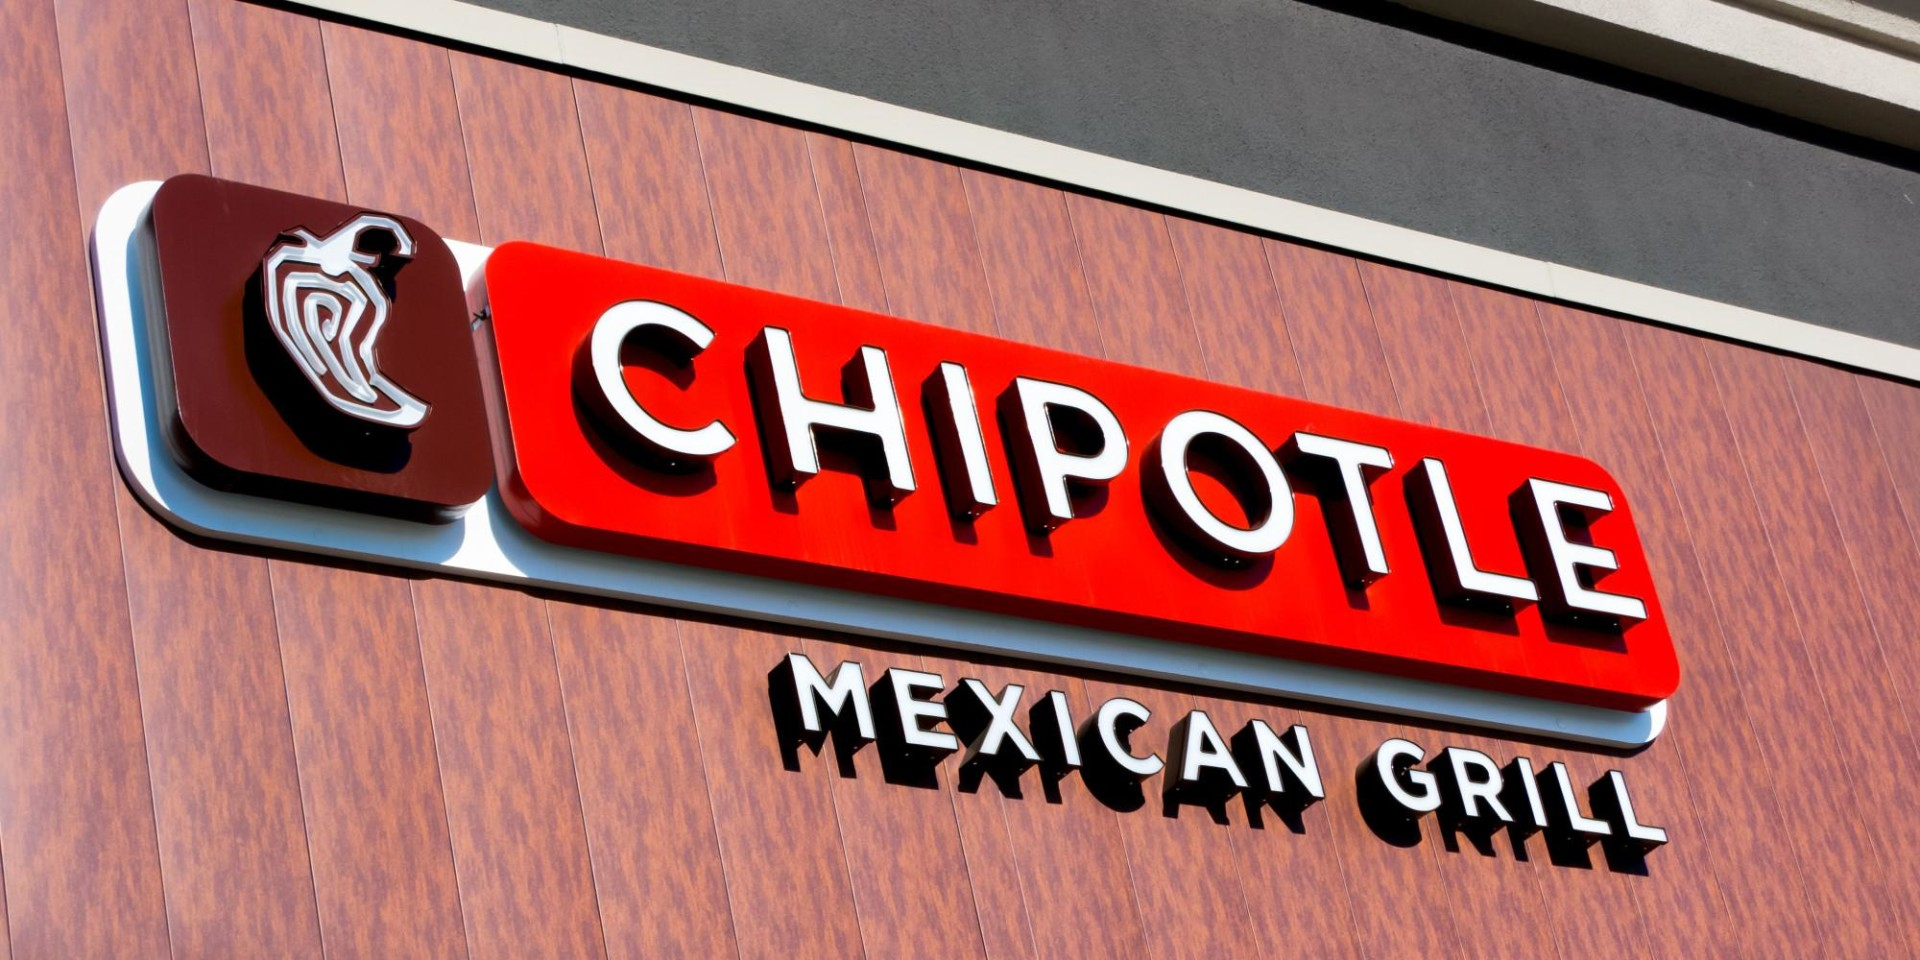 NYSE: CMG | Chipotle Mexican Grill, Inc. Common Stock News, Ratings, and Charts